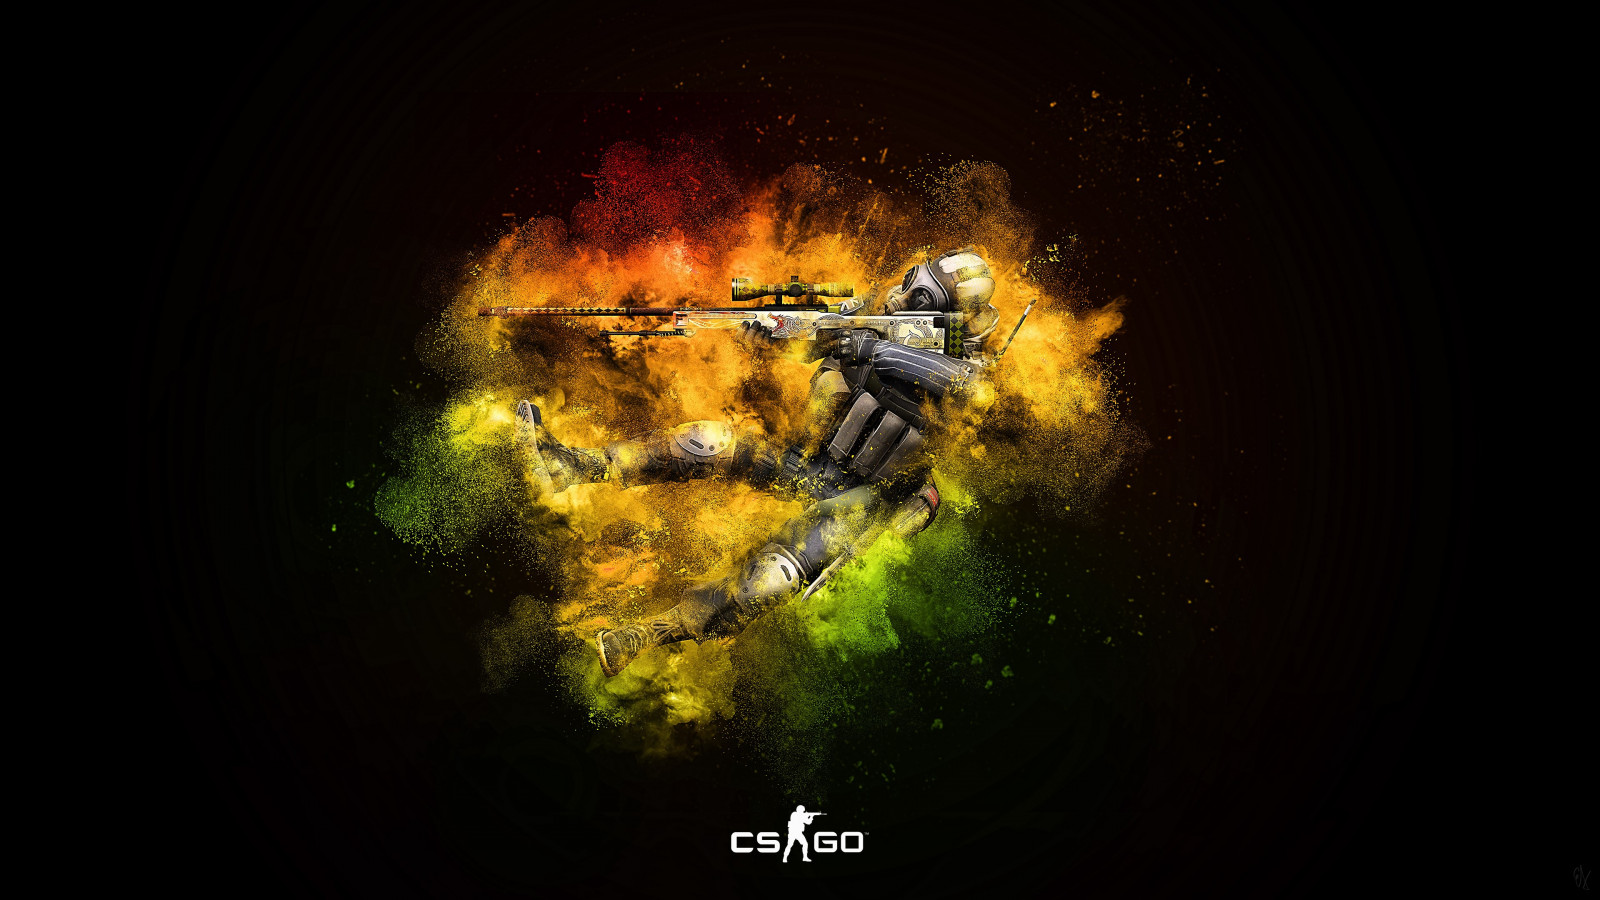 Download wallpaper Counter Strike Global Offensive 1600x900 1600x900